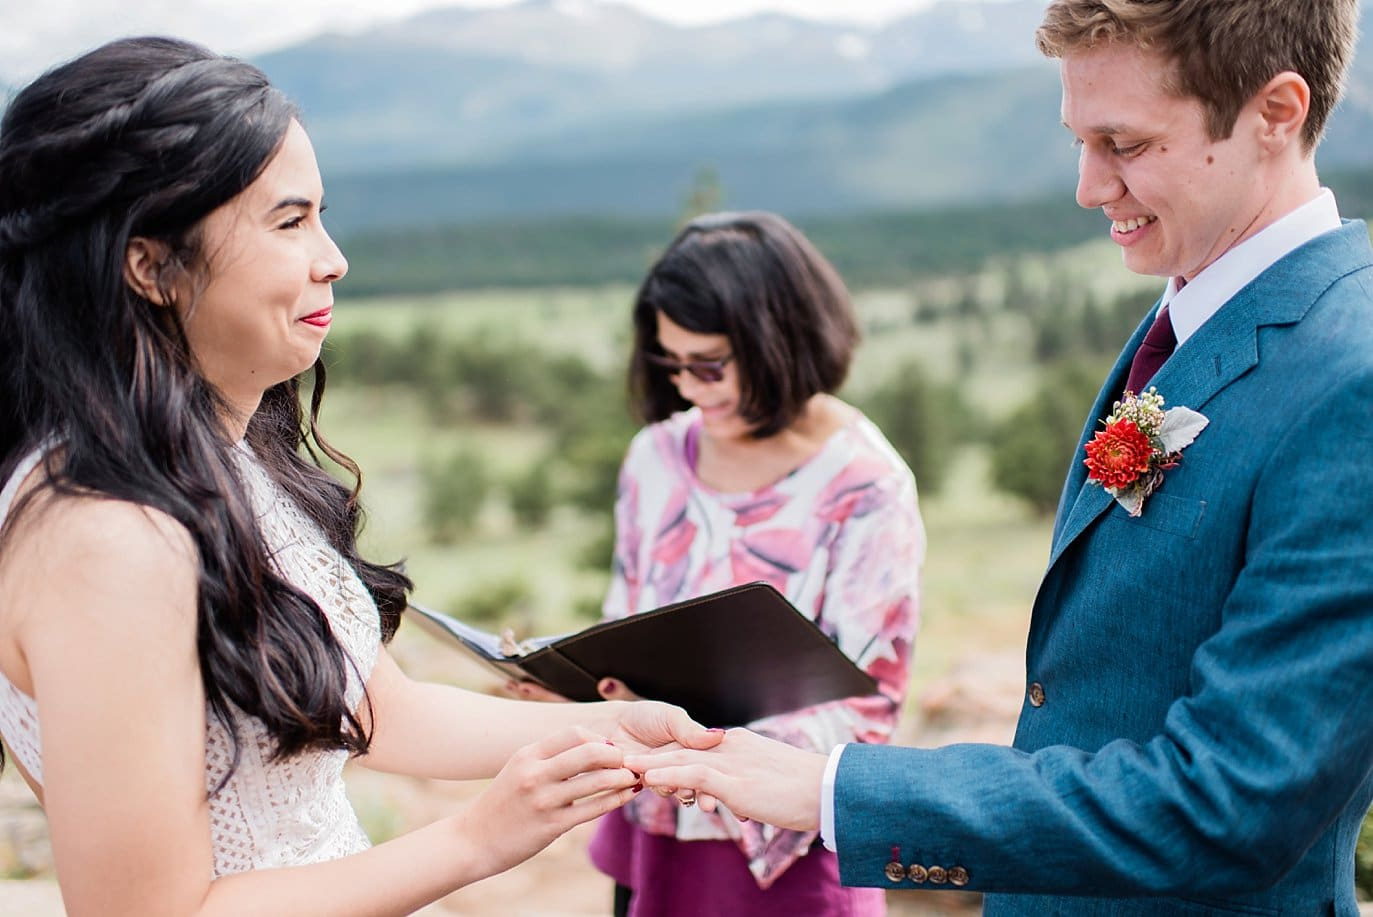 ring exchange at Rocky Mountain National Park Wedding by Estes Park Wedding Photography Jennie Crate